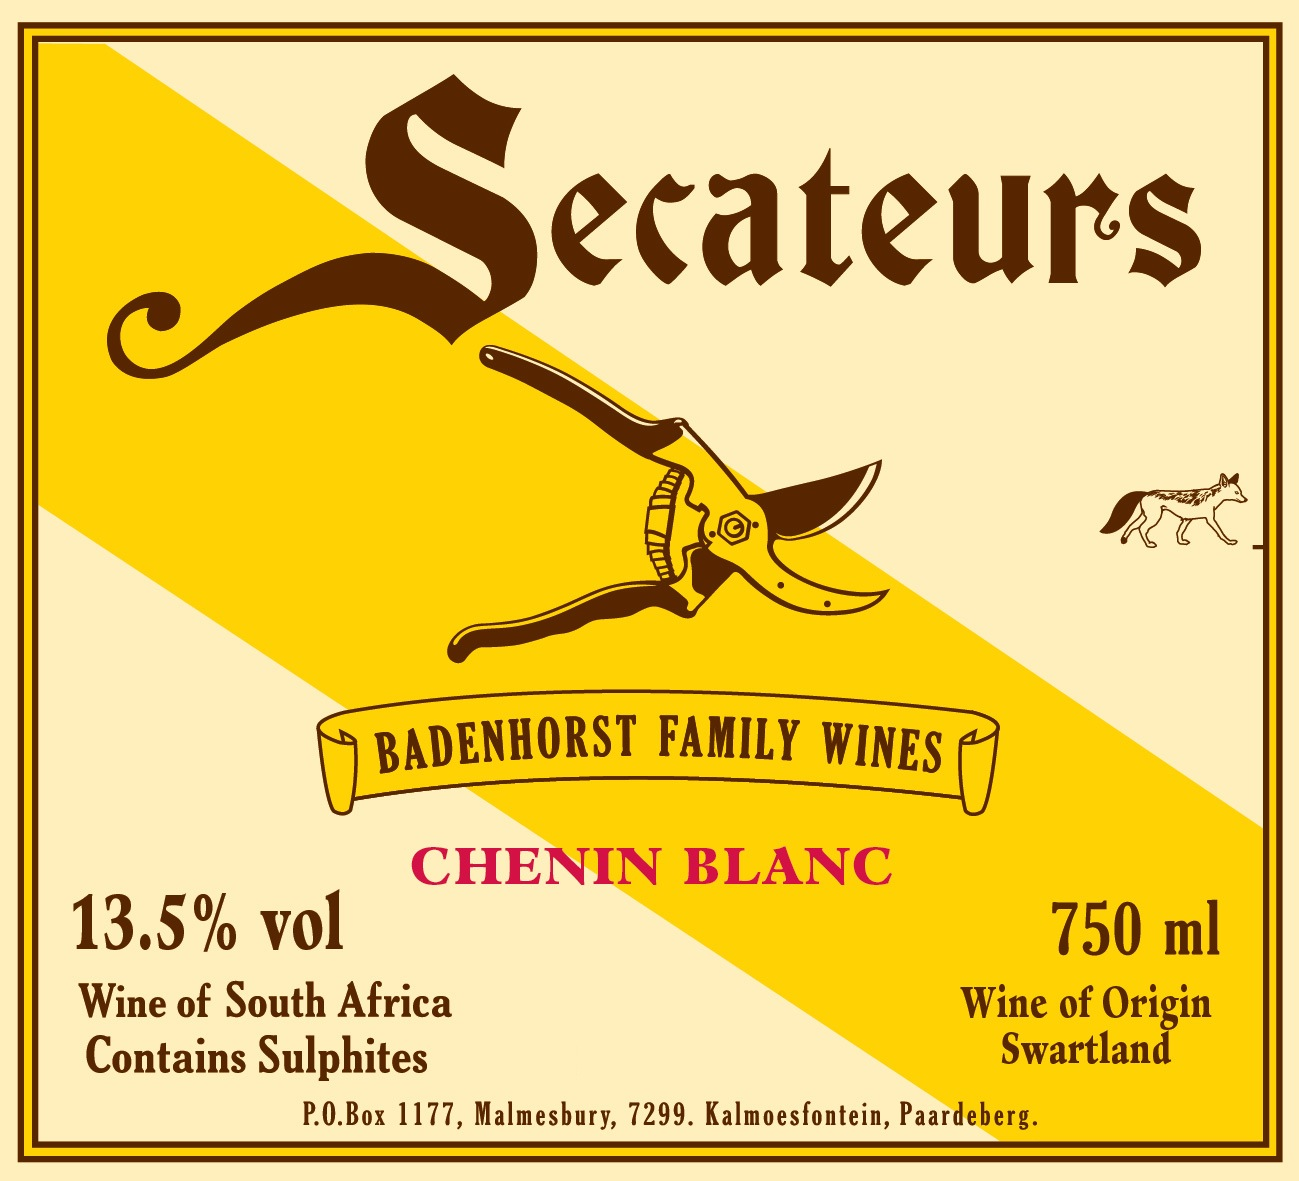 2017 A. A. Badenhorst Family Wines Secateurs Chenin Blanc